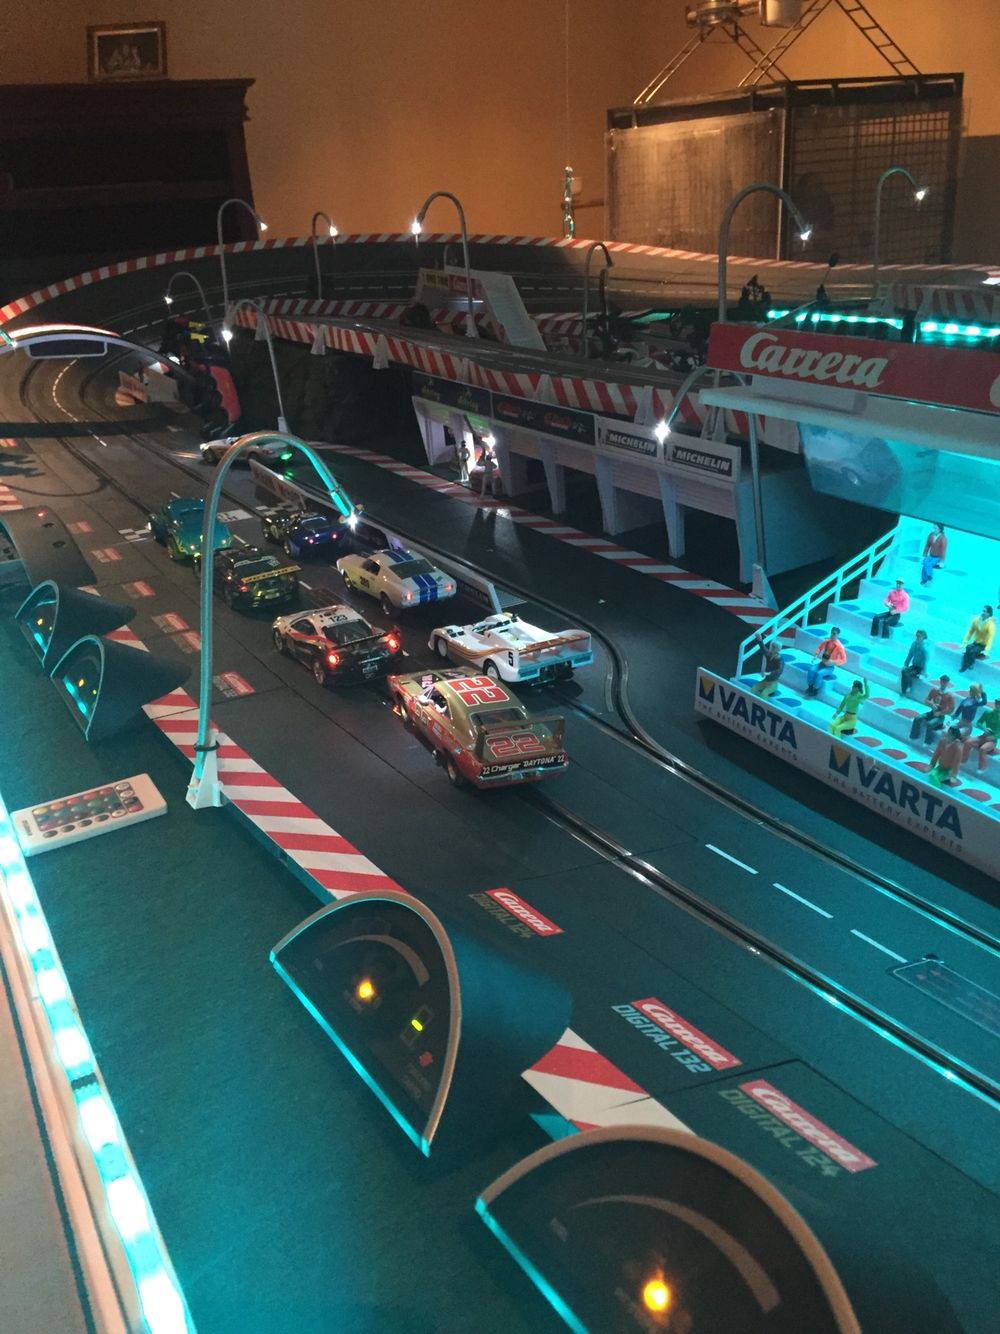 Carrera 1 32 Slot Cars Race Track